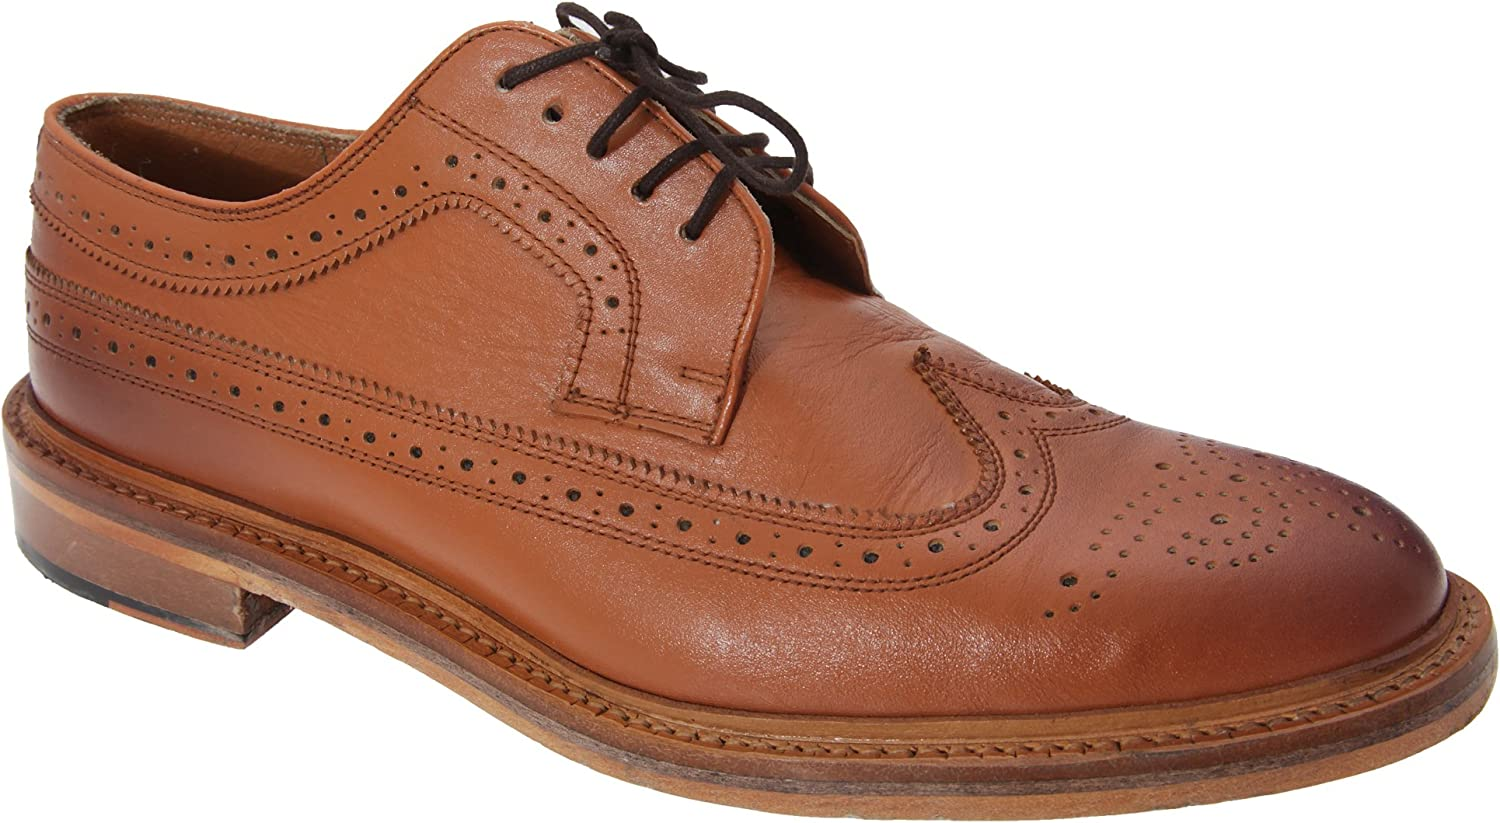 Kensington Classics Mens All Leather American Brogue Gibson shoes